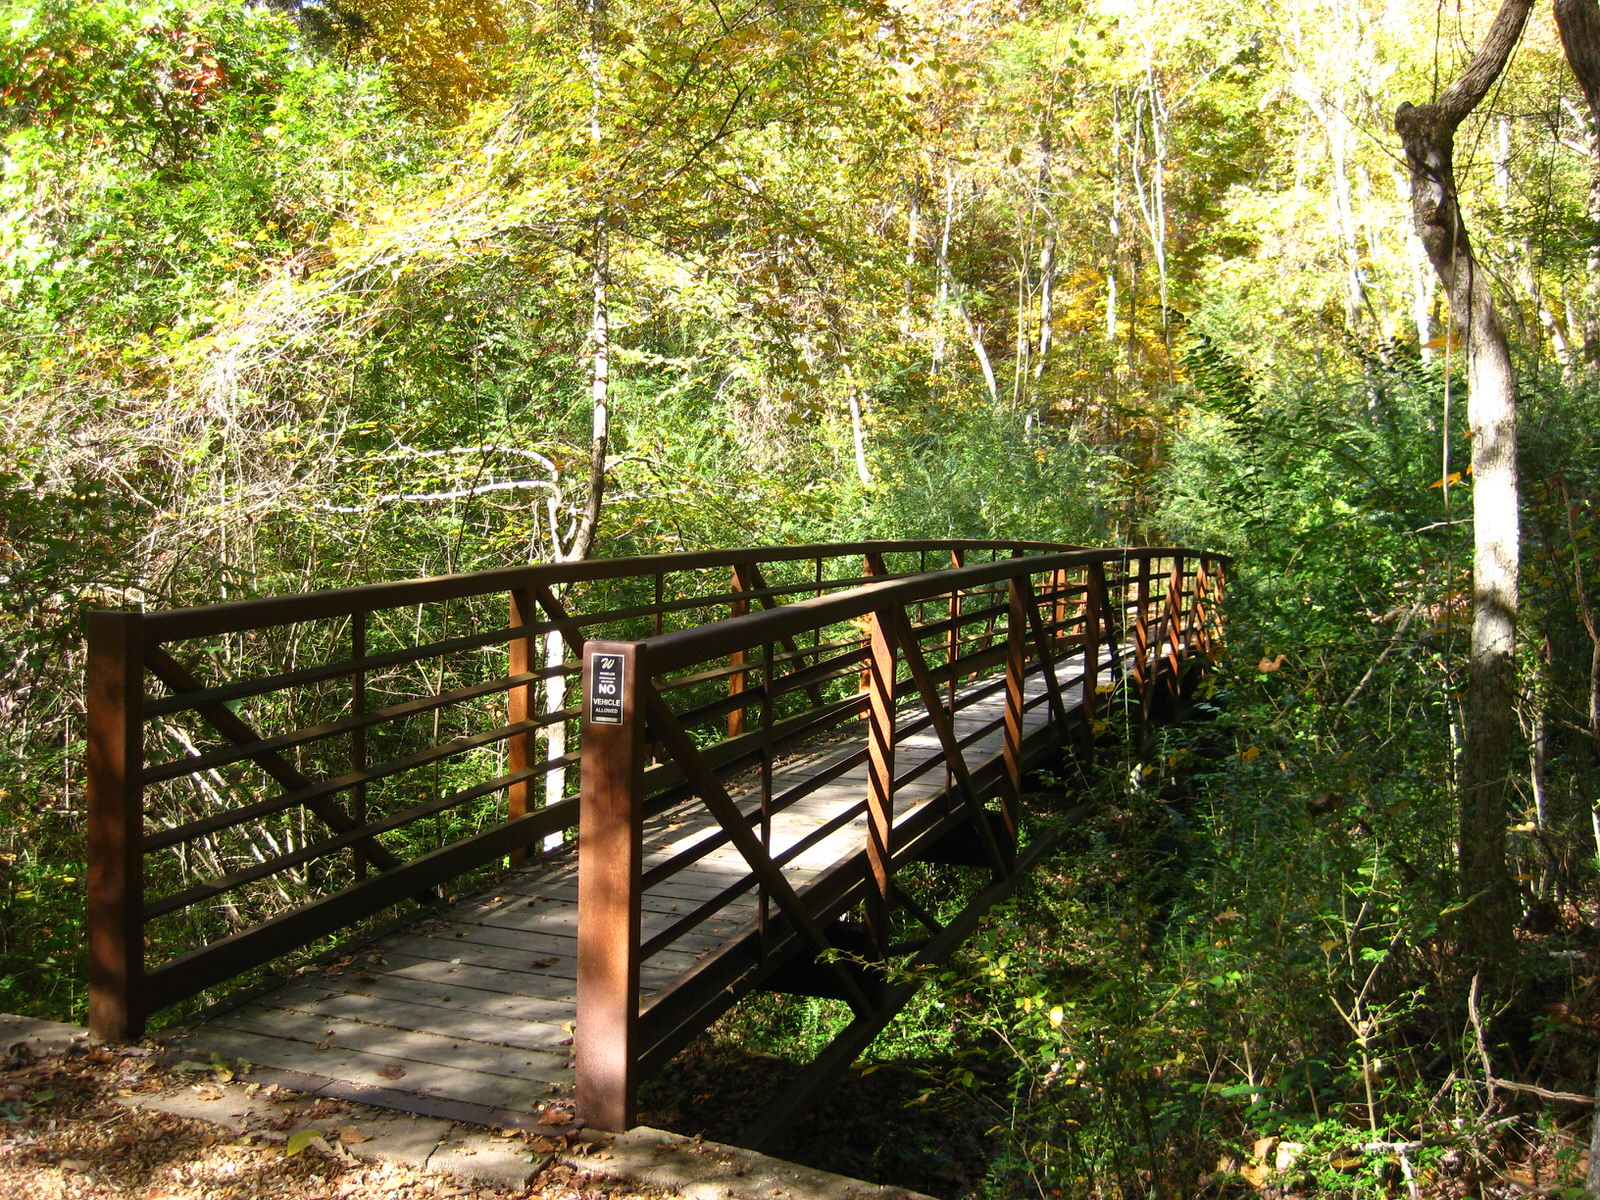 photo: One of the four bridges in Bailey's Woods.